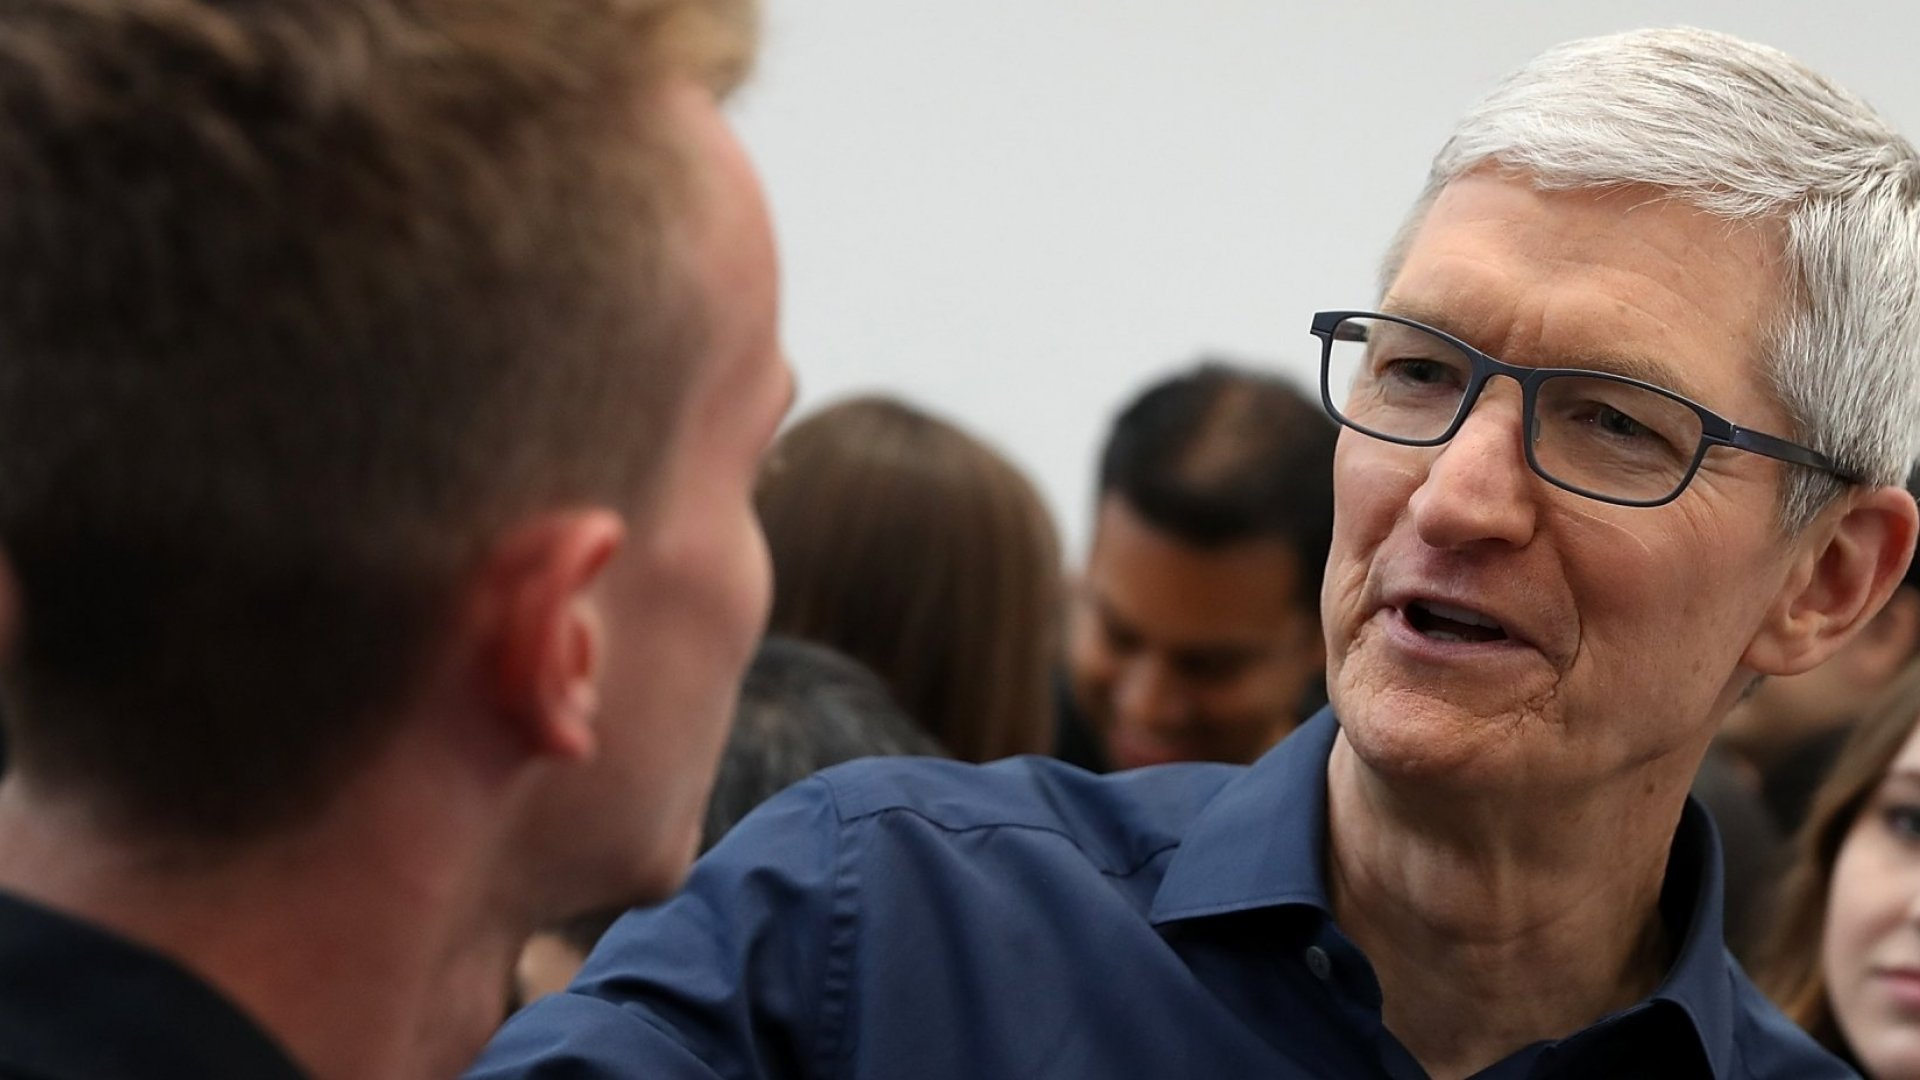 Apple Just AnnouncedIt's Responsible for 2.4 Million US Jobs. That's Not Even the Most Impressive Part